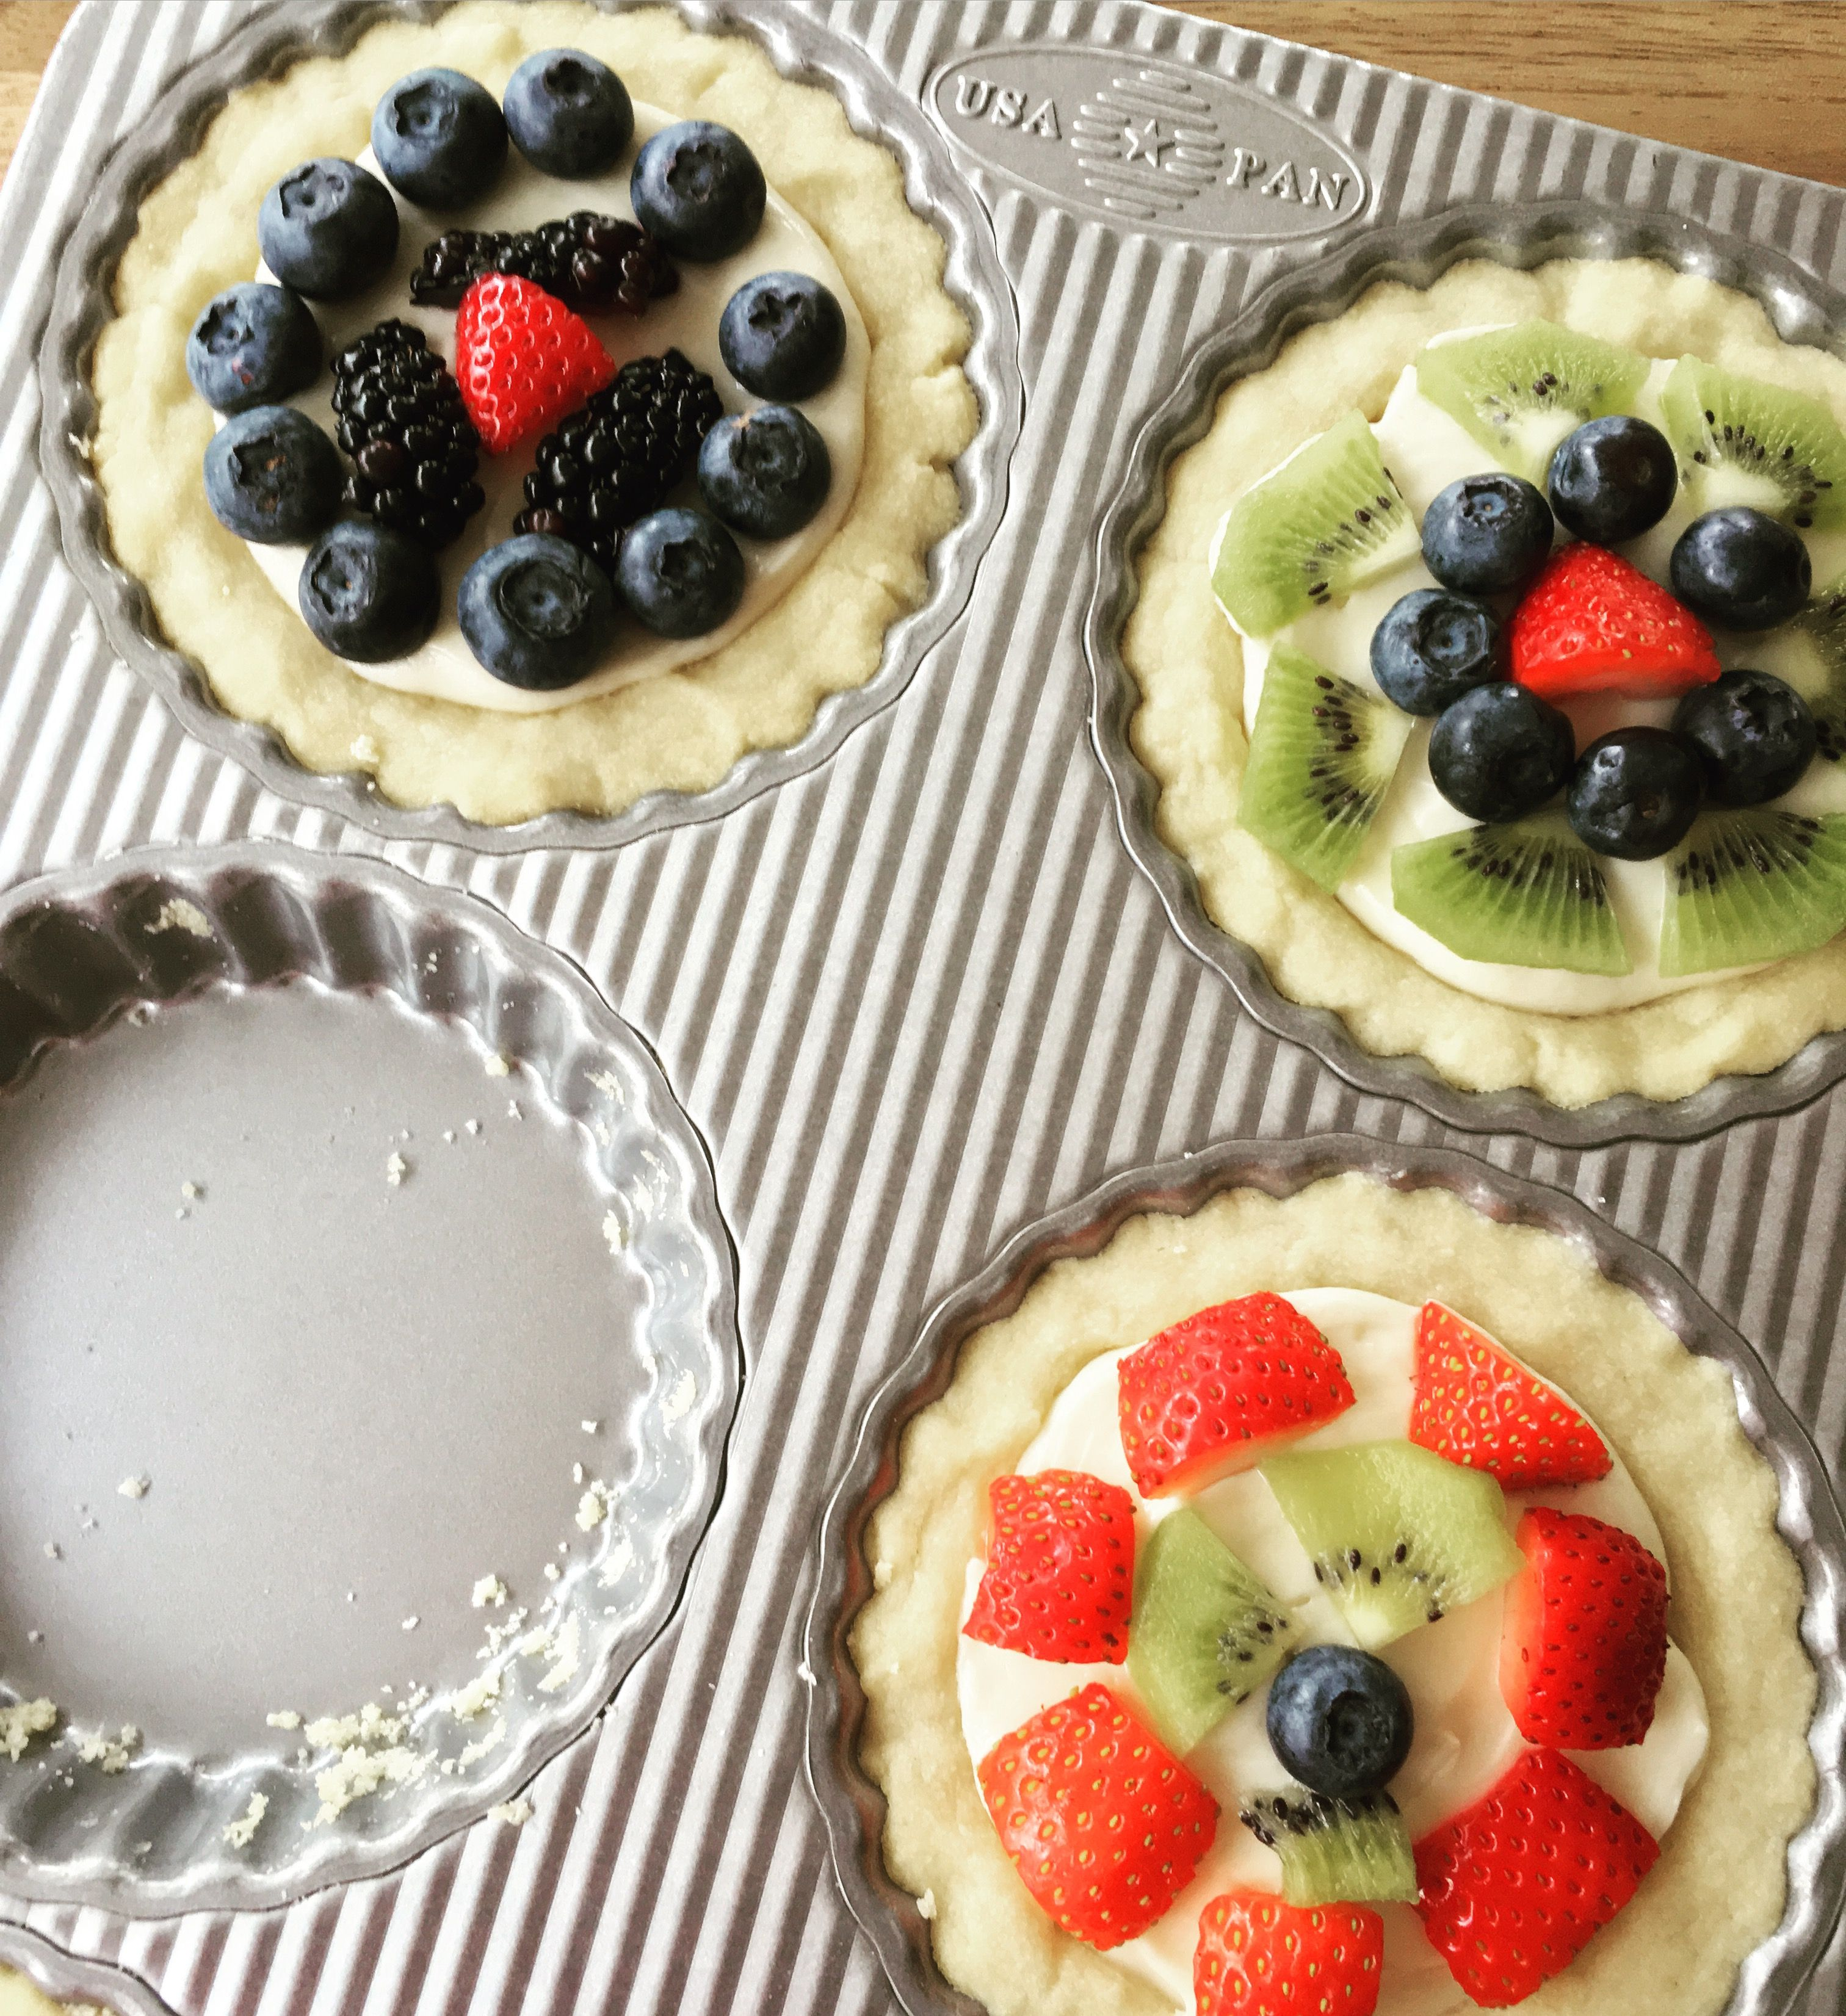 Fresh fruit mini tarts baked in our usa pan mini fluted